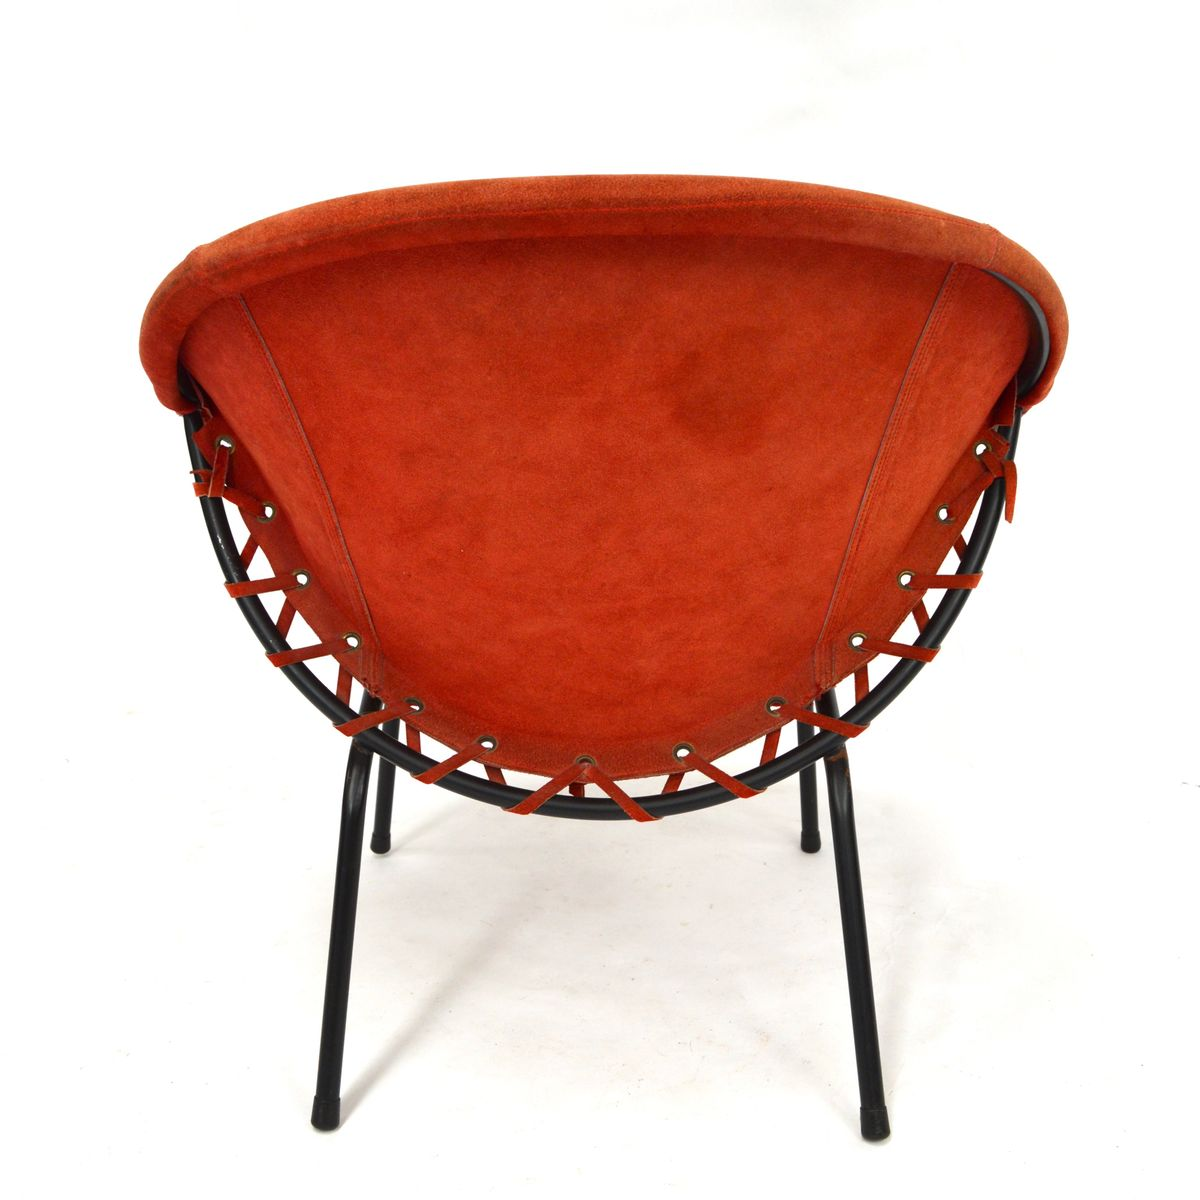 co chairs circle old lawn vintage chair from lusch and for sale at pamono